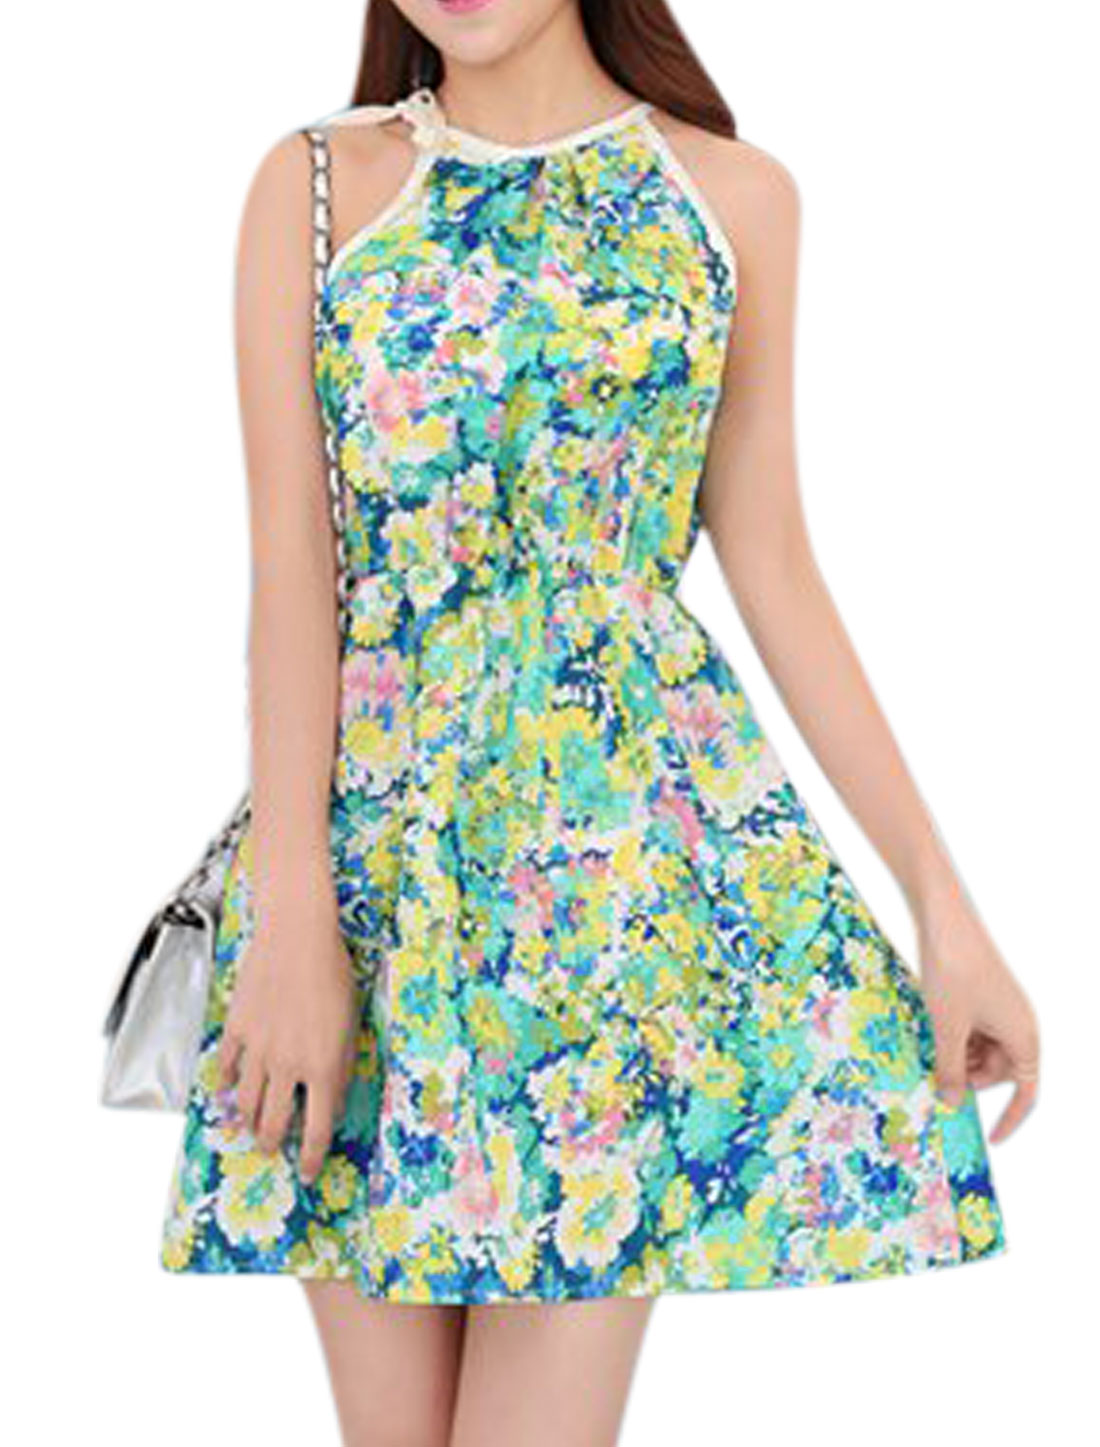 Ladies Halter Neck Sleeveless Self Tie Strap Casual Floral Dress Green XS